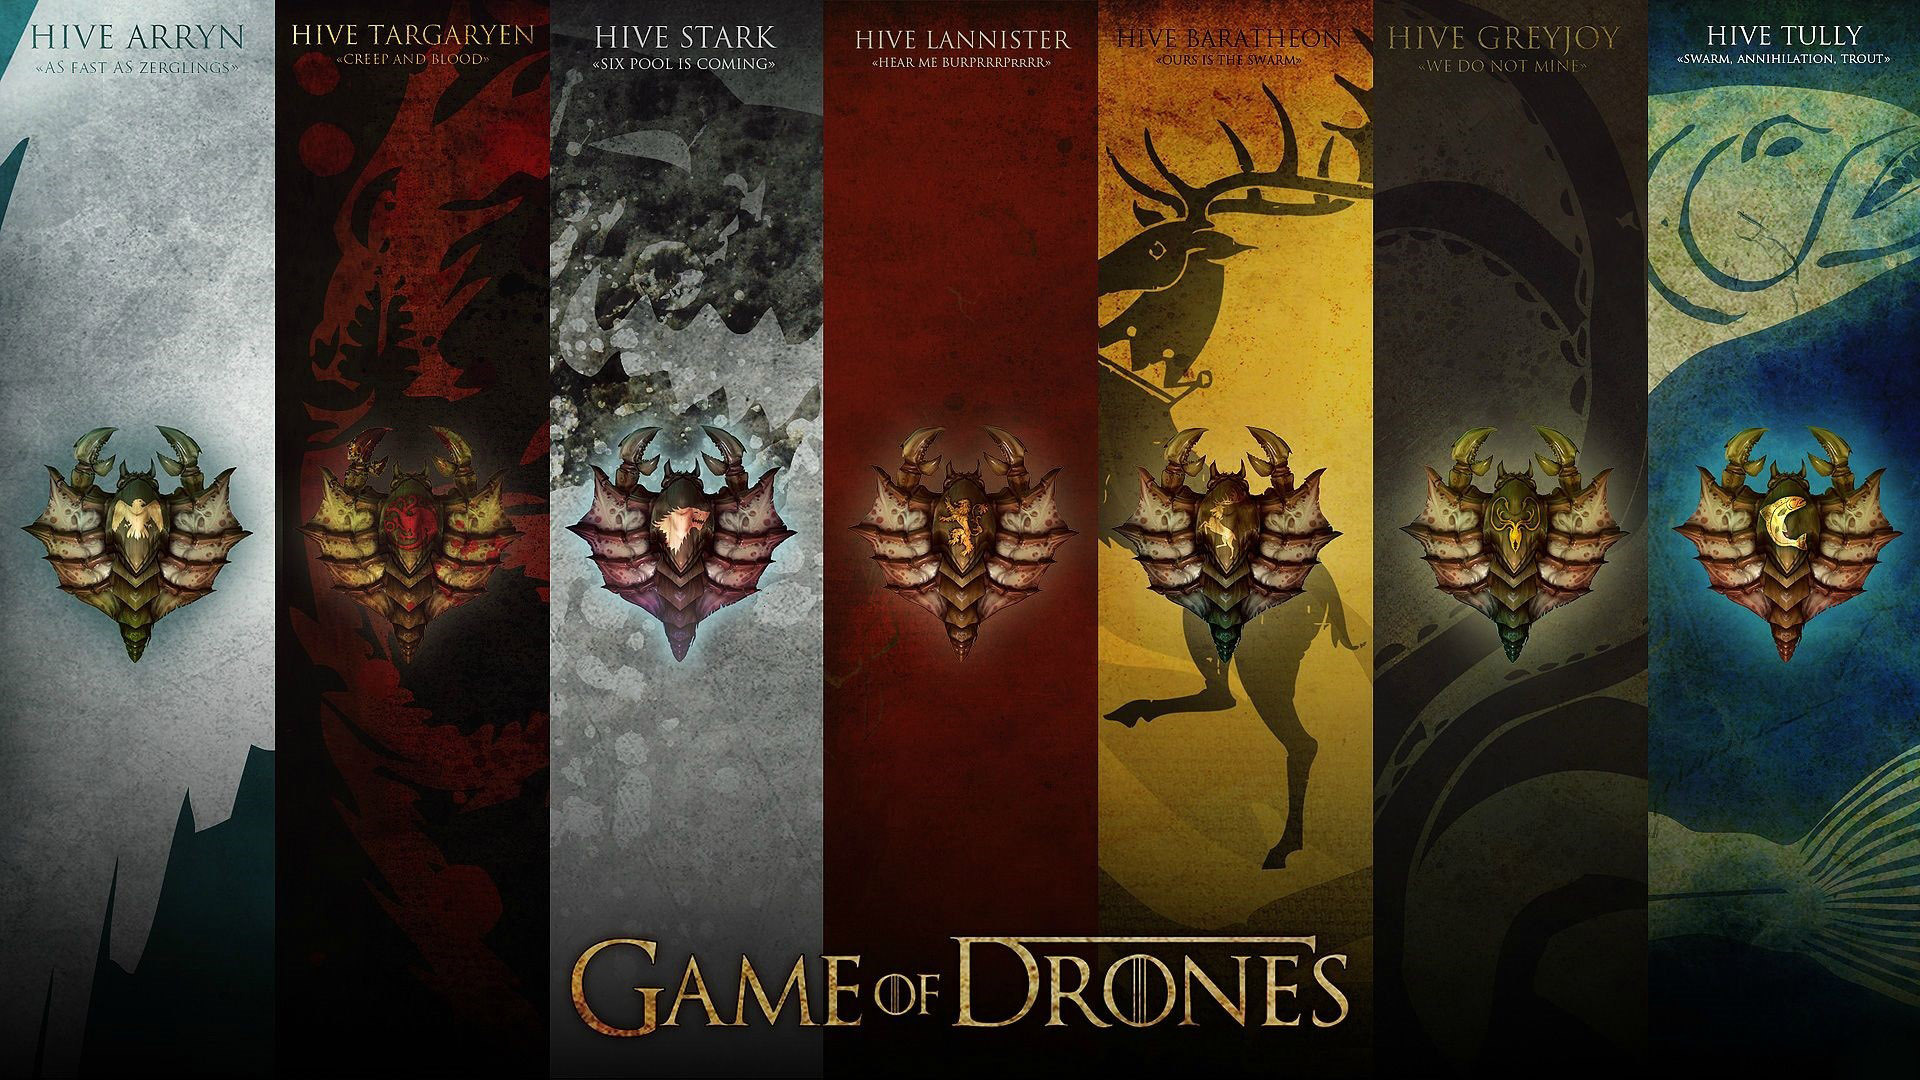 Game of Drones HD Wallpaper Game Of Thrones Wallpapers 1920x1080